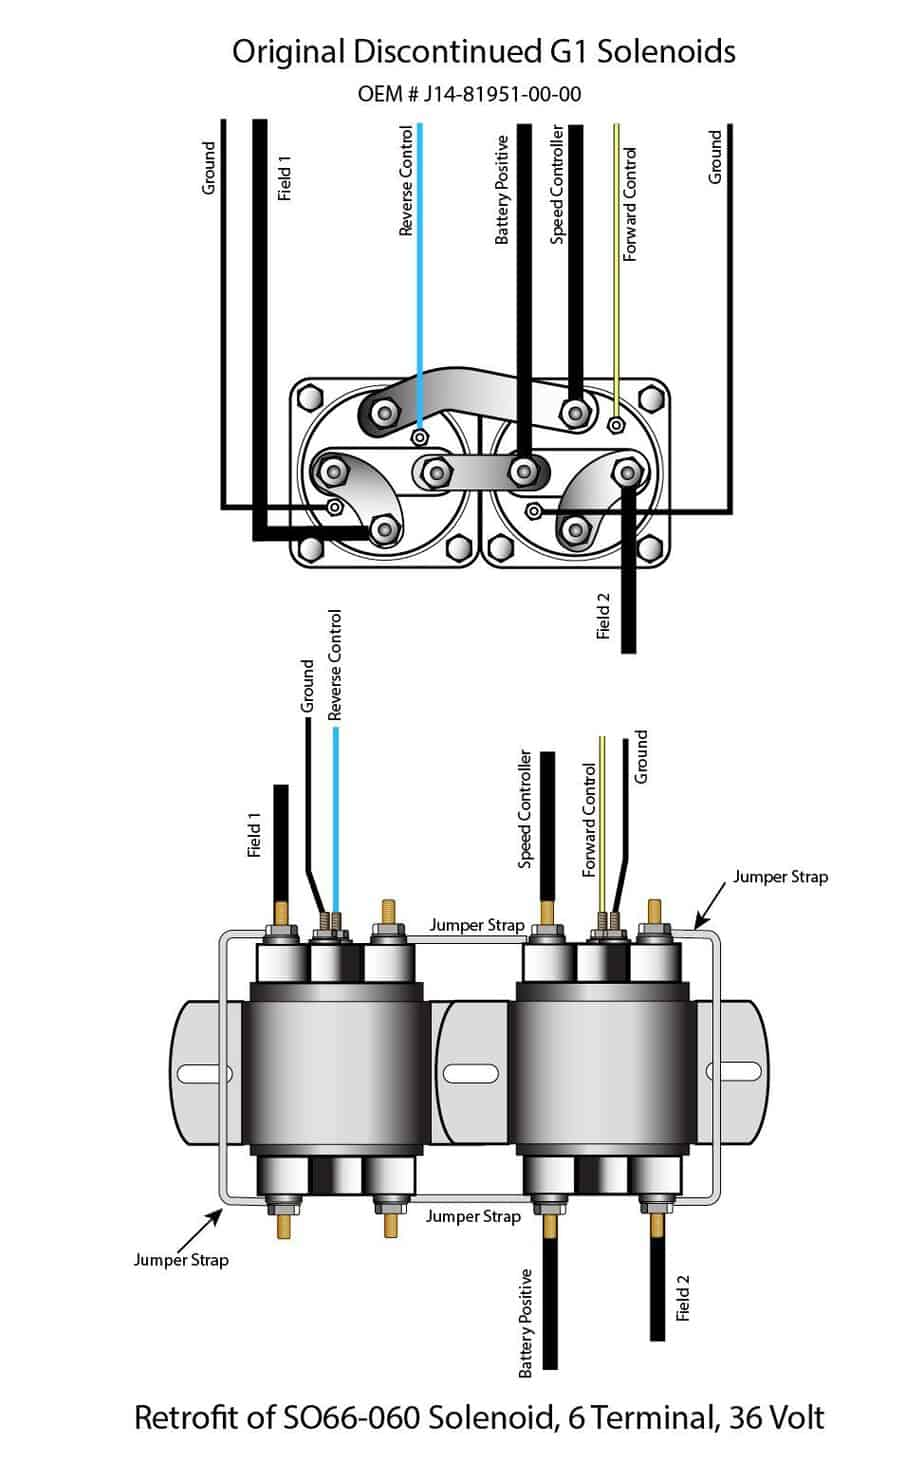 Gas Powered Yamaha Golf Cart Wiring Diagram from golfcarttips.com